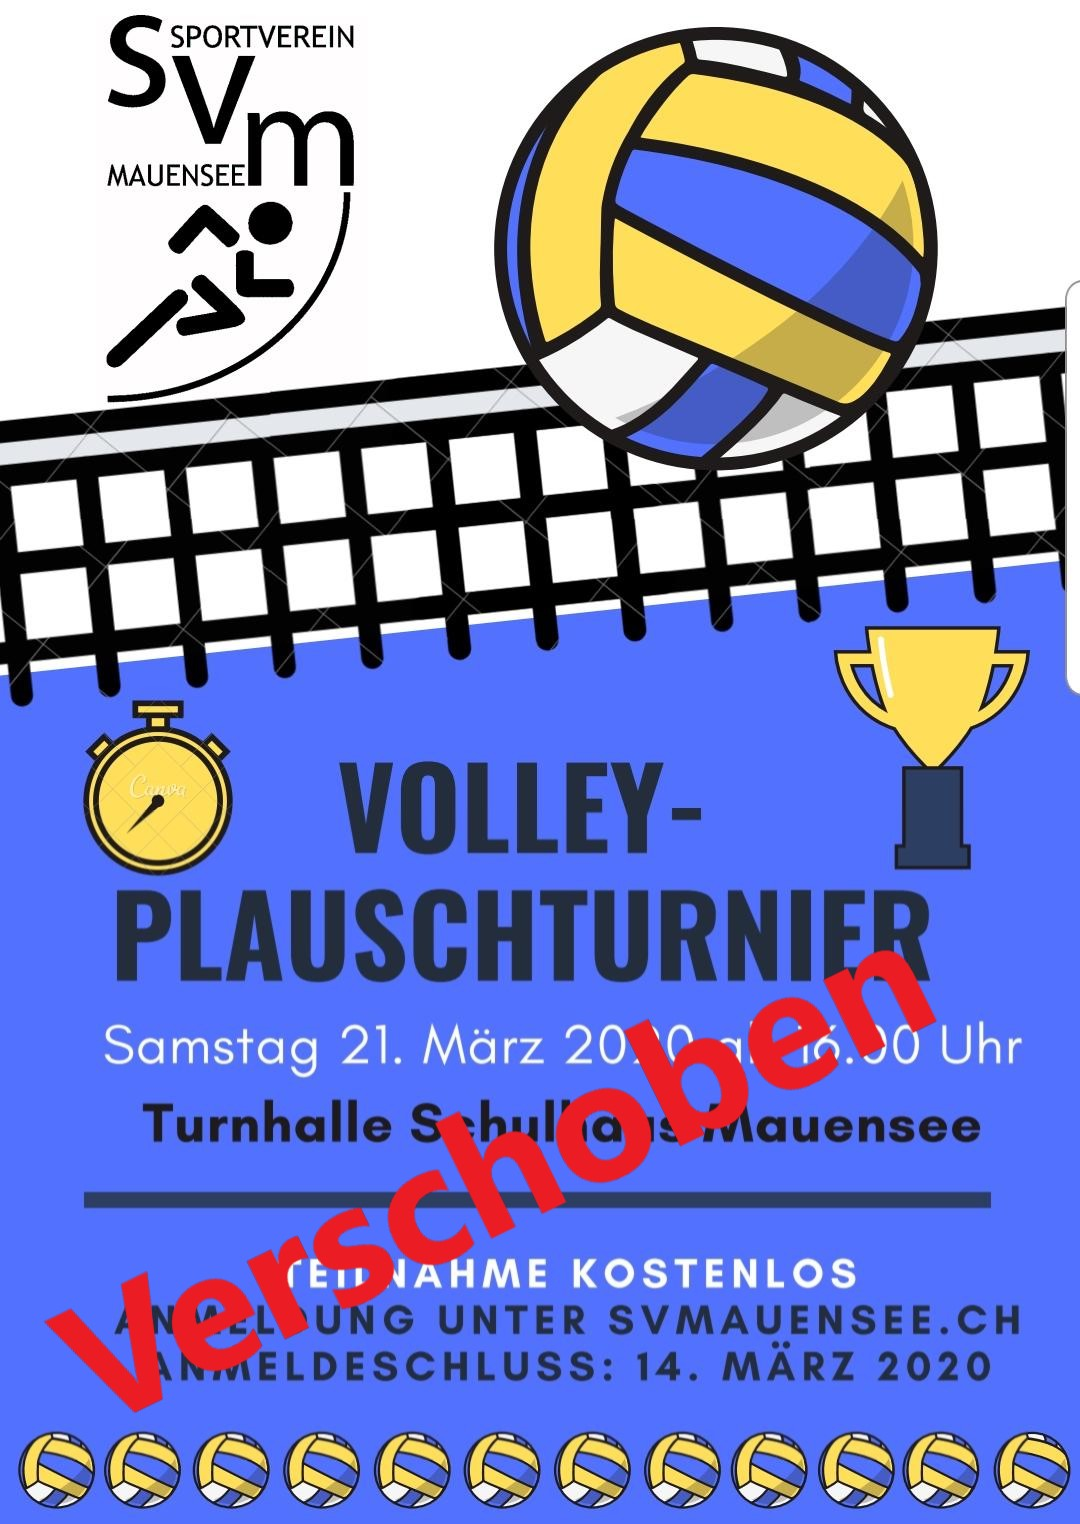 Volley-Plauschtournier